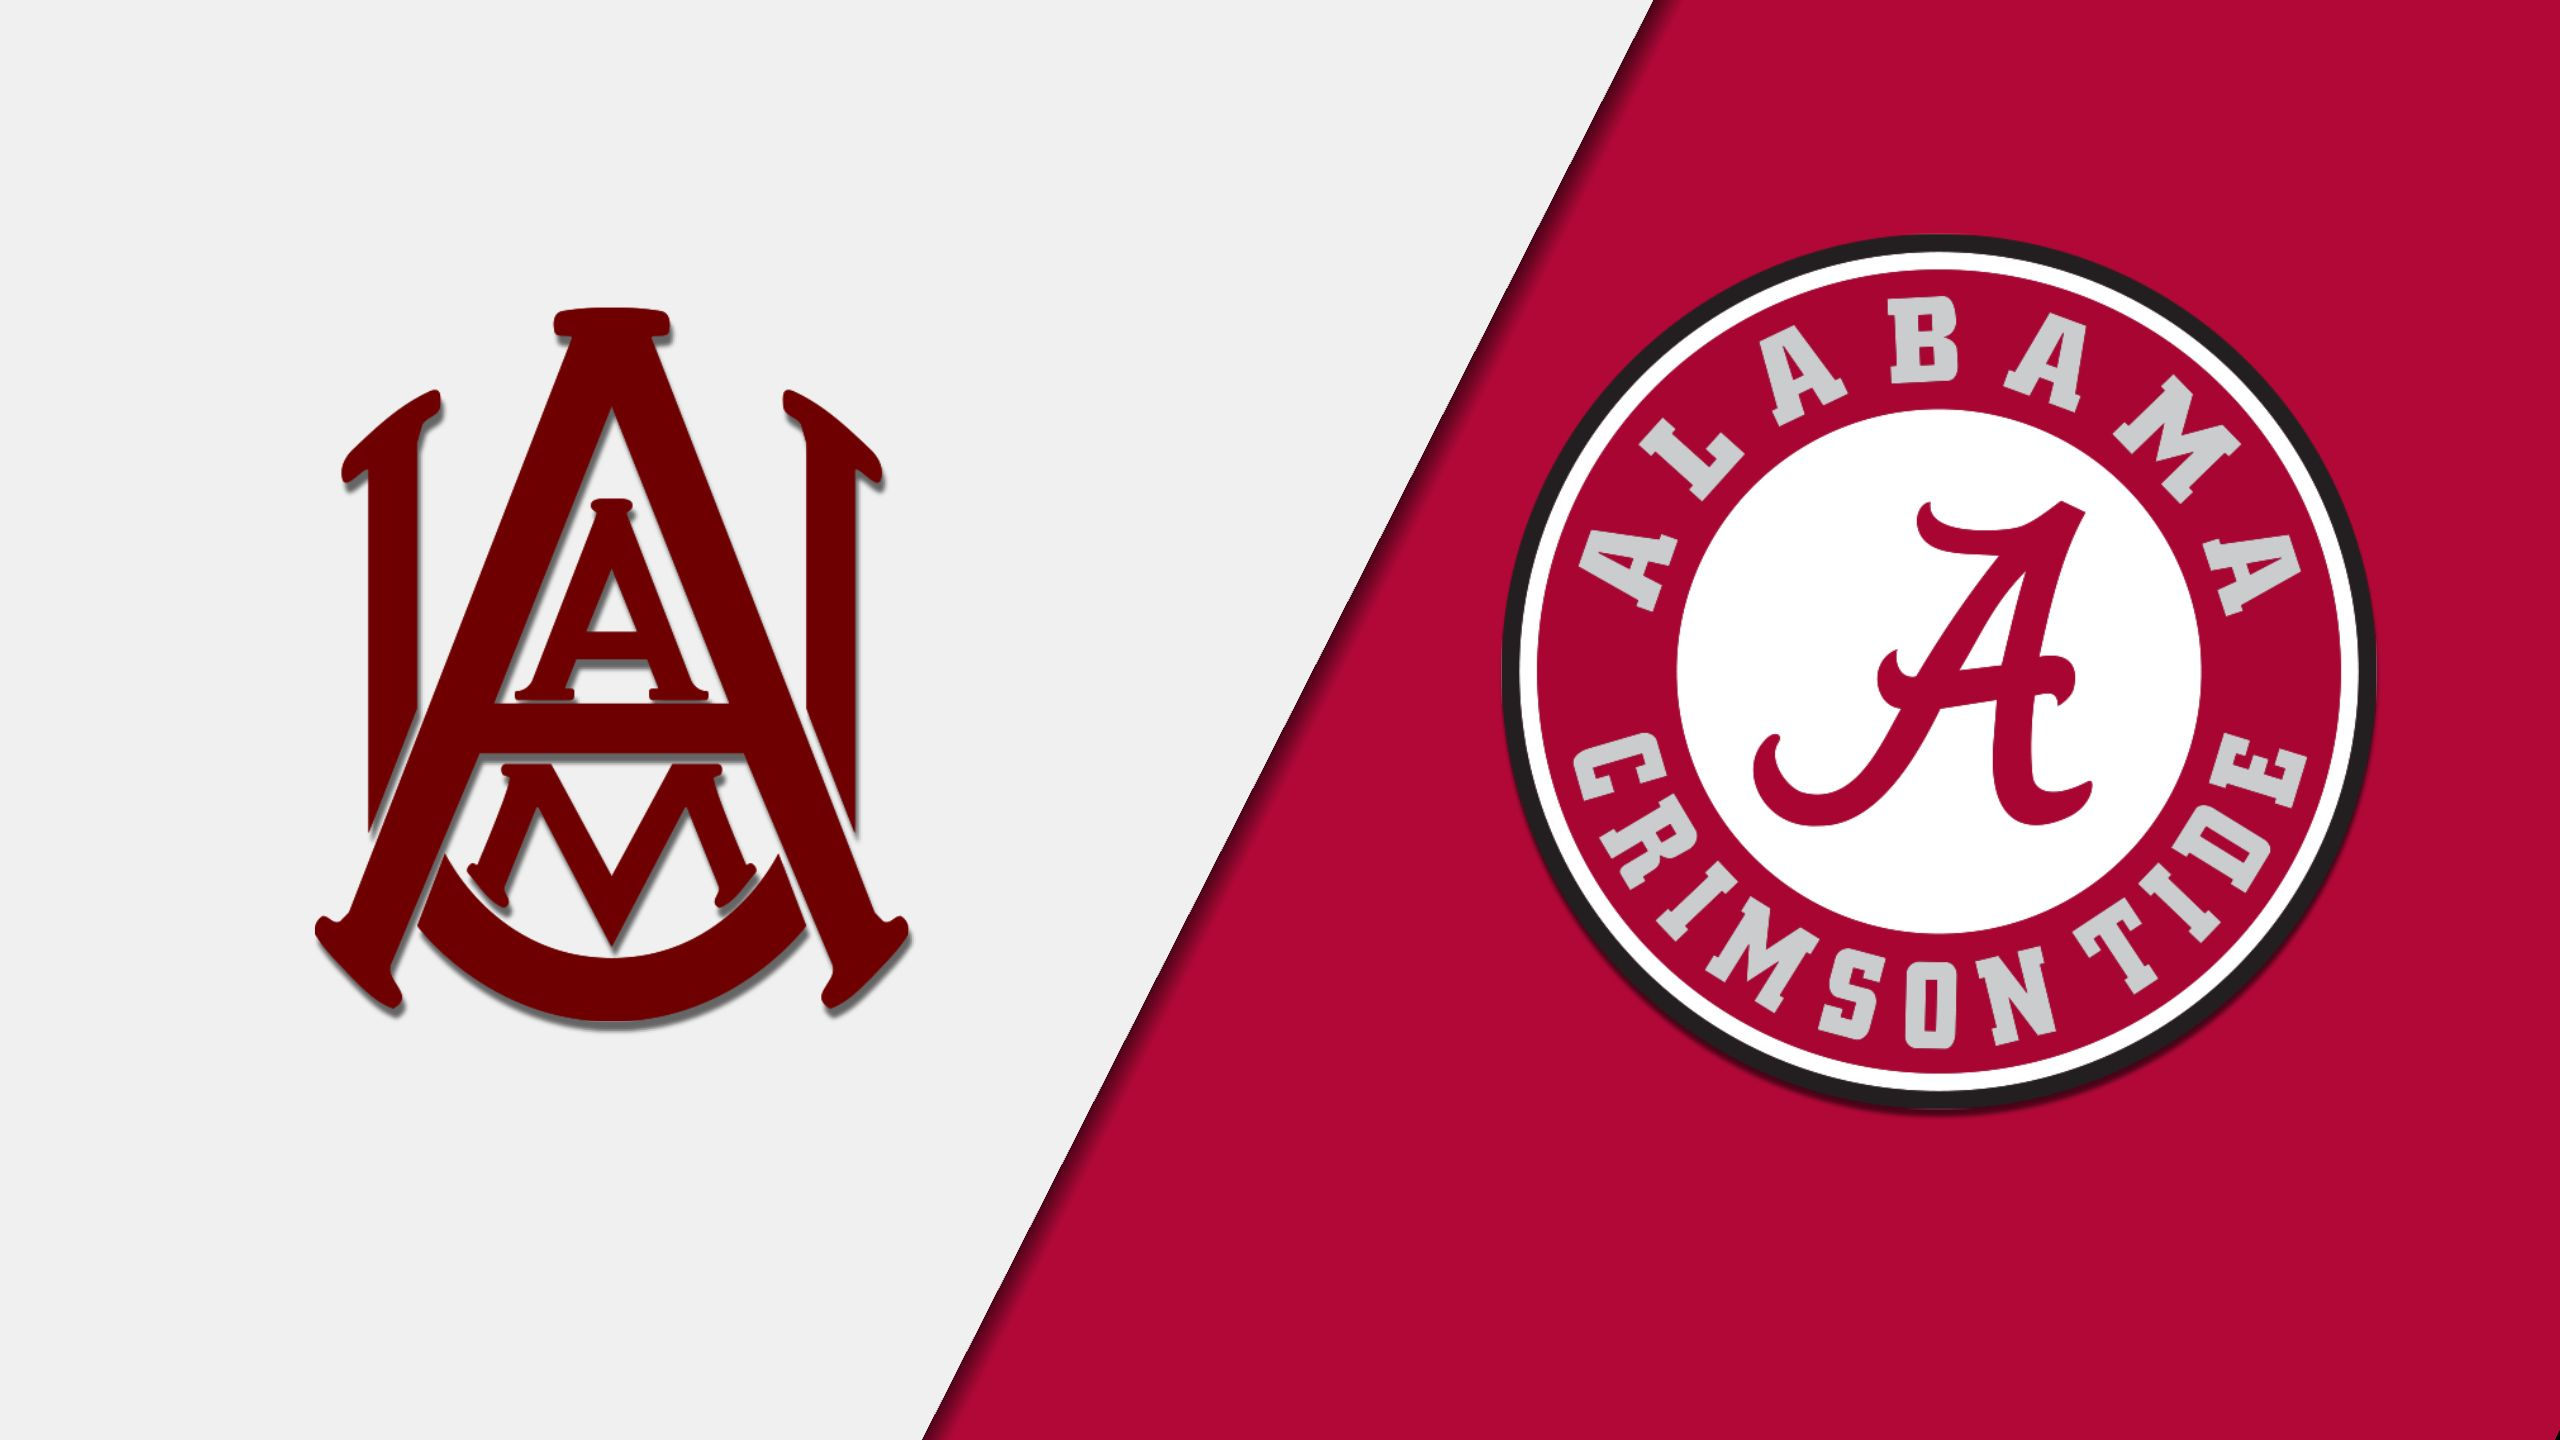 Alabama A&M vs. Alabama (Baseball)